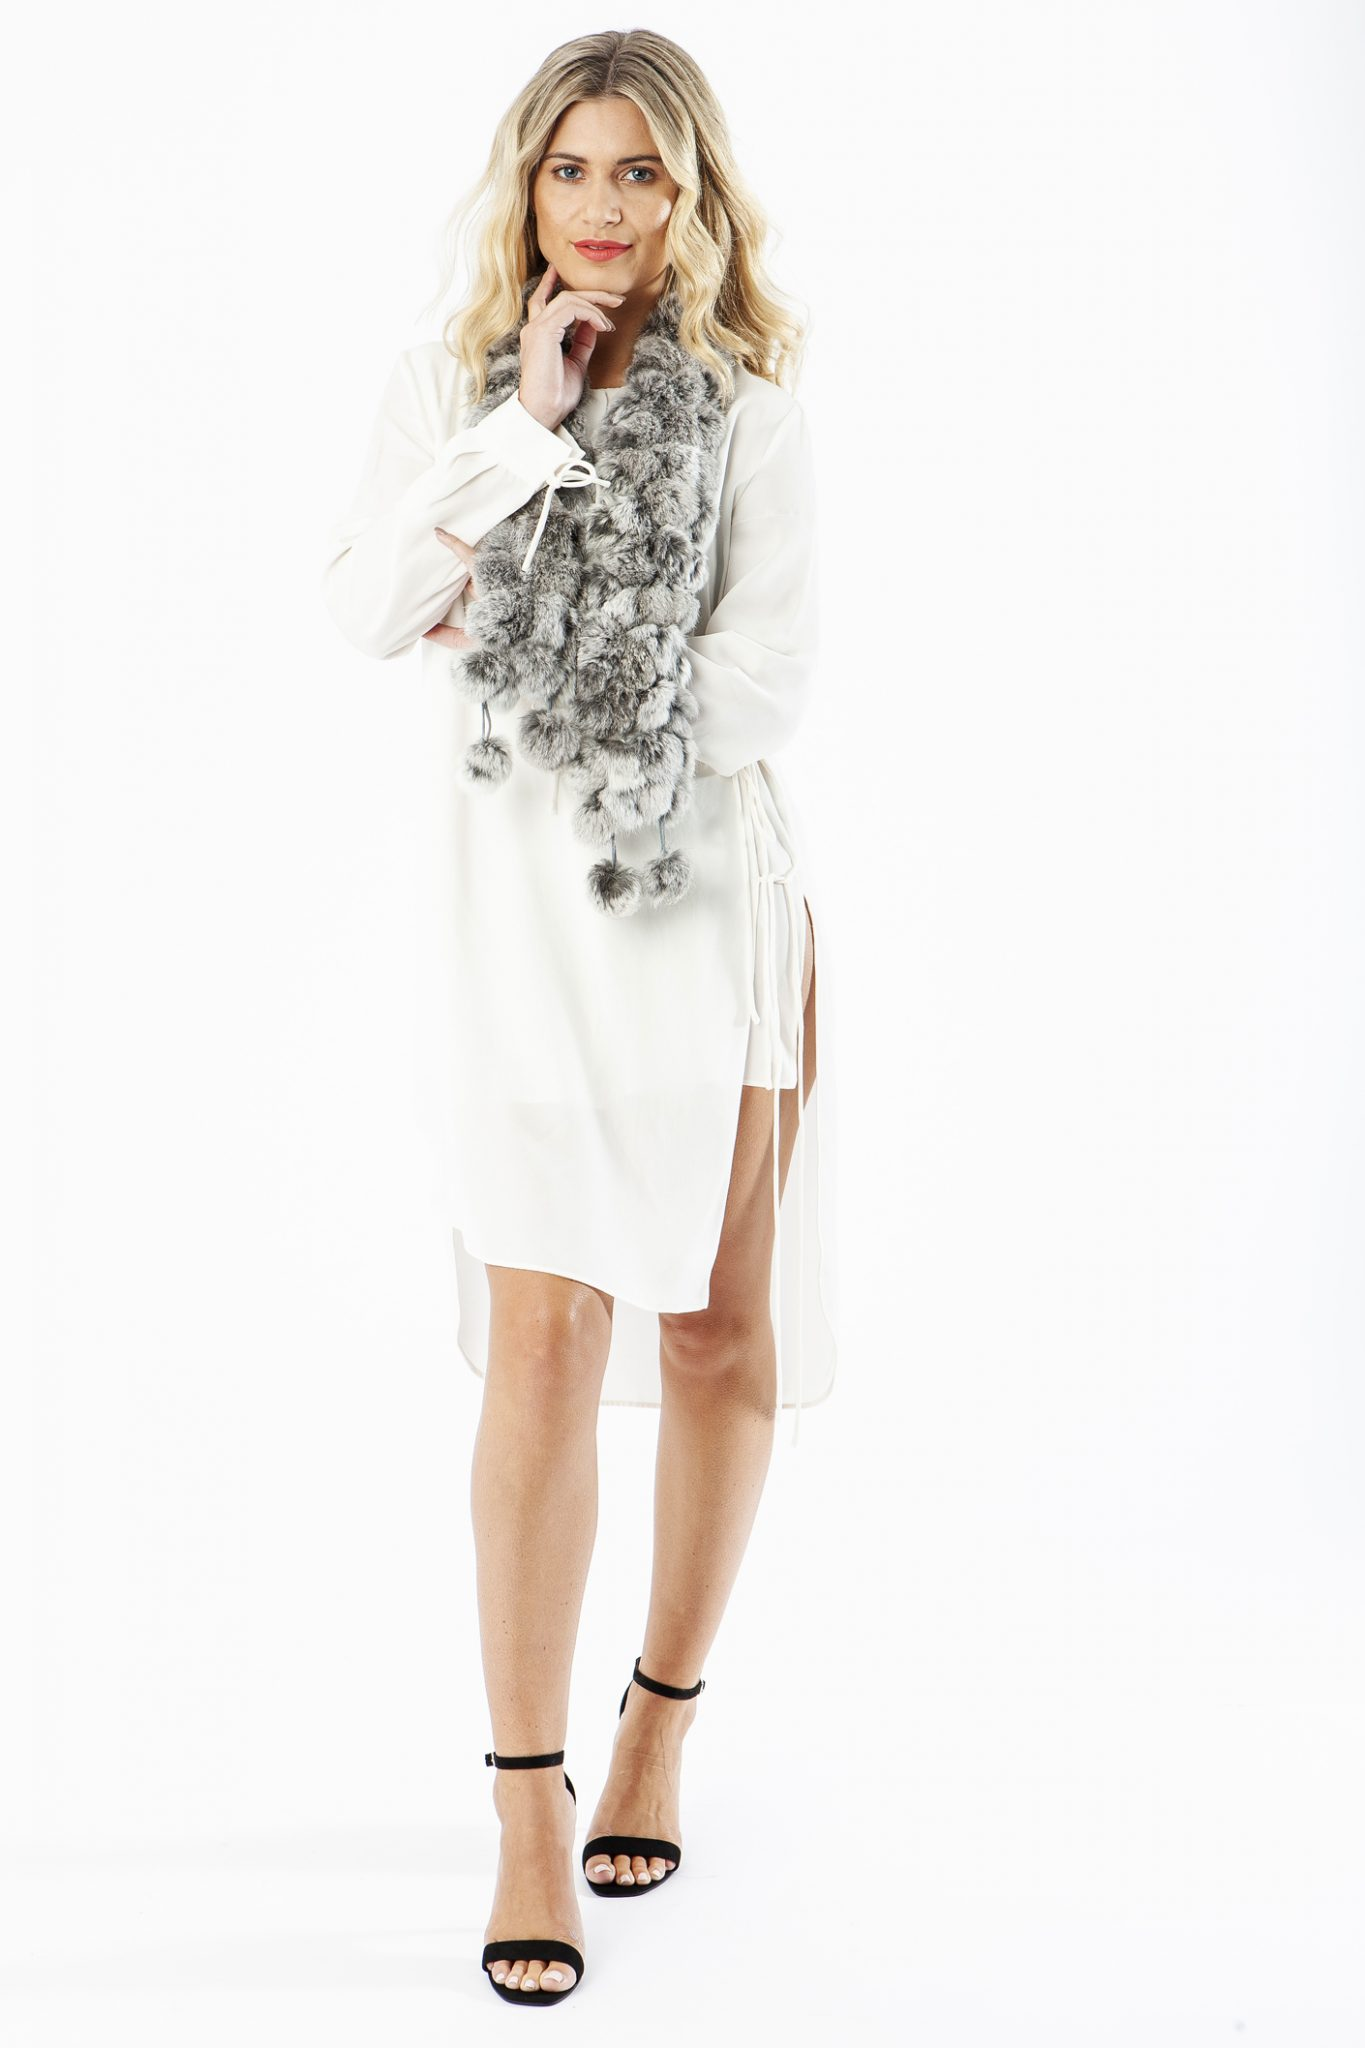 fashion-photography-for-ecommerce-shot-in-my-manchester-studio